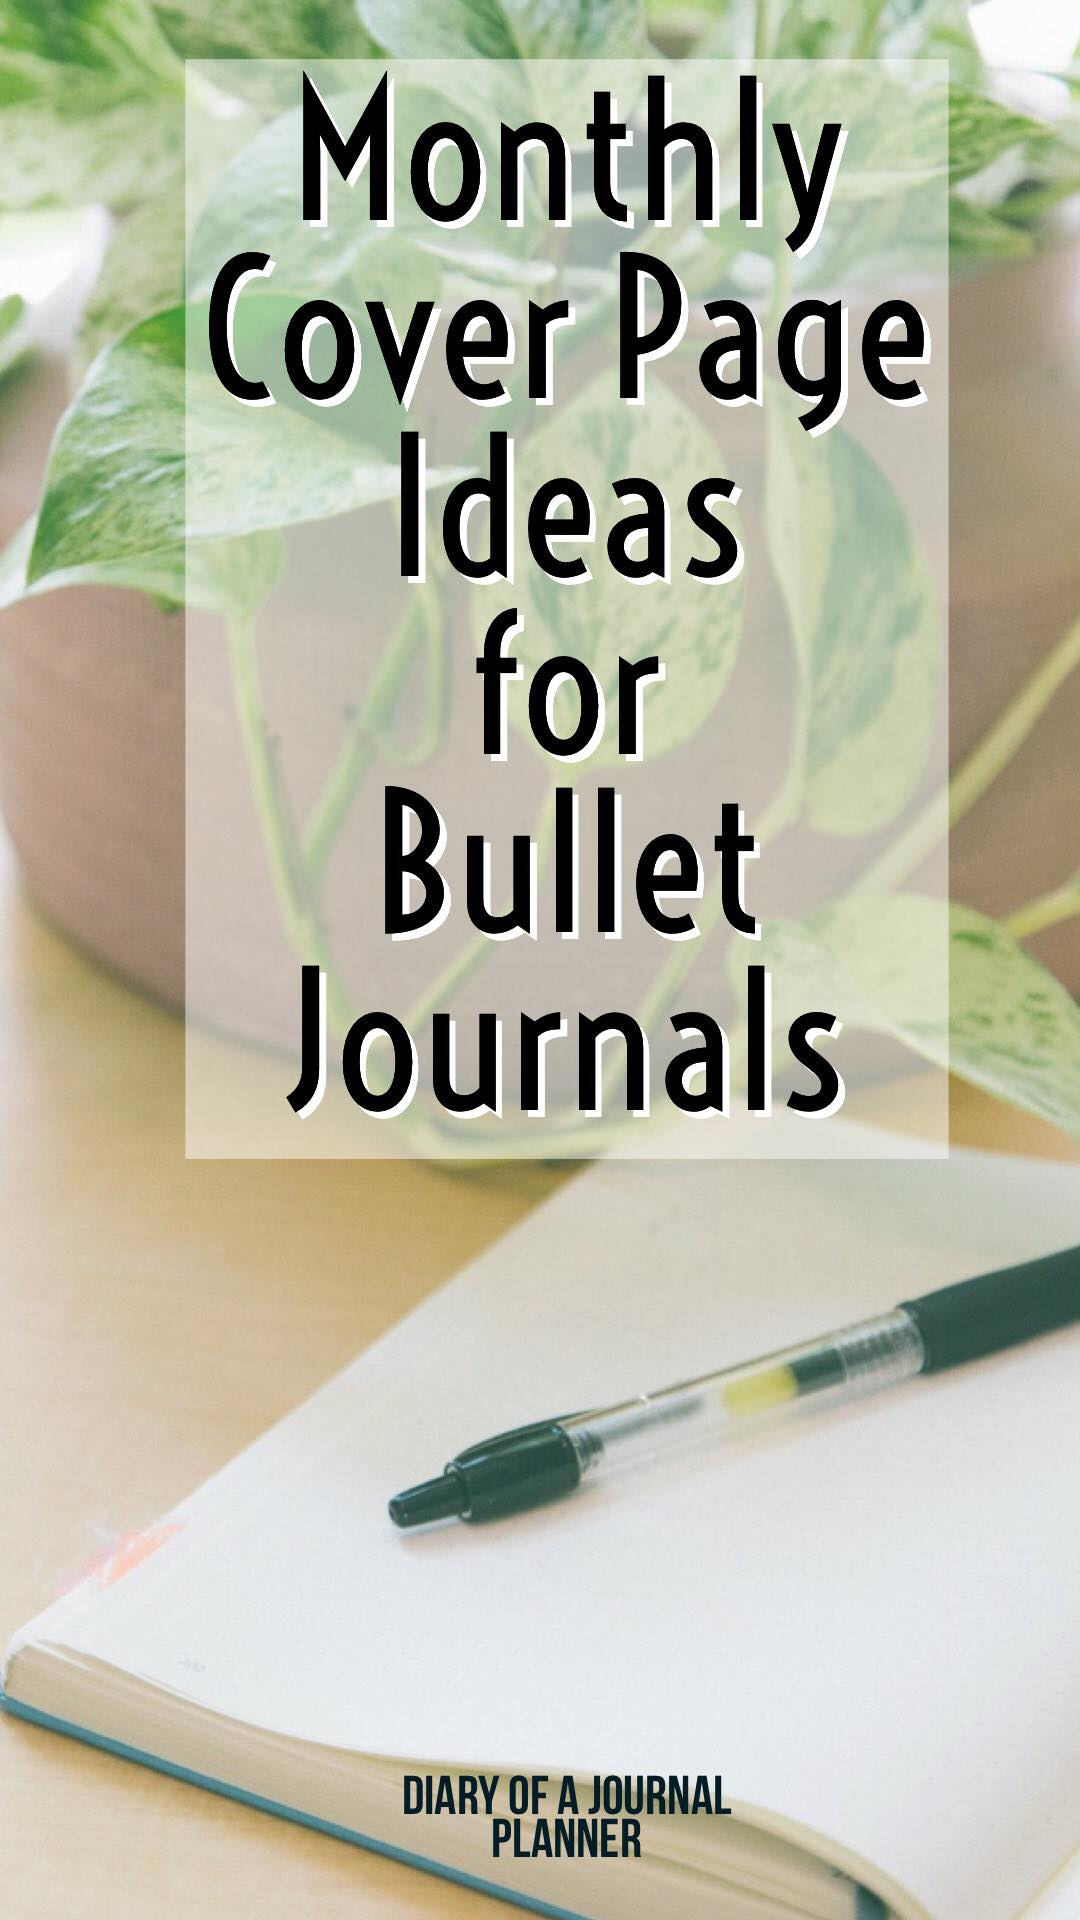 Bullet Journal Ideas for monthly cover page, hundreds of amazing monthly themes!